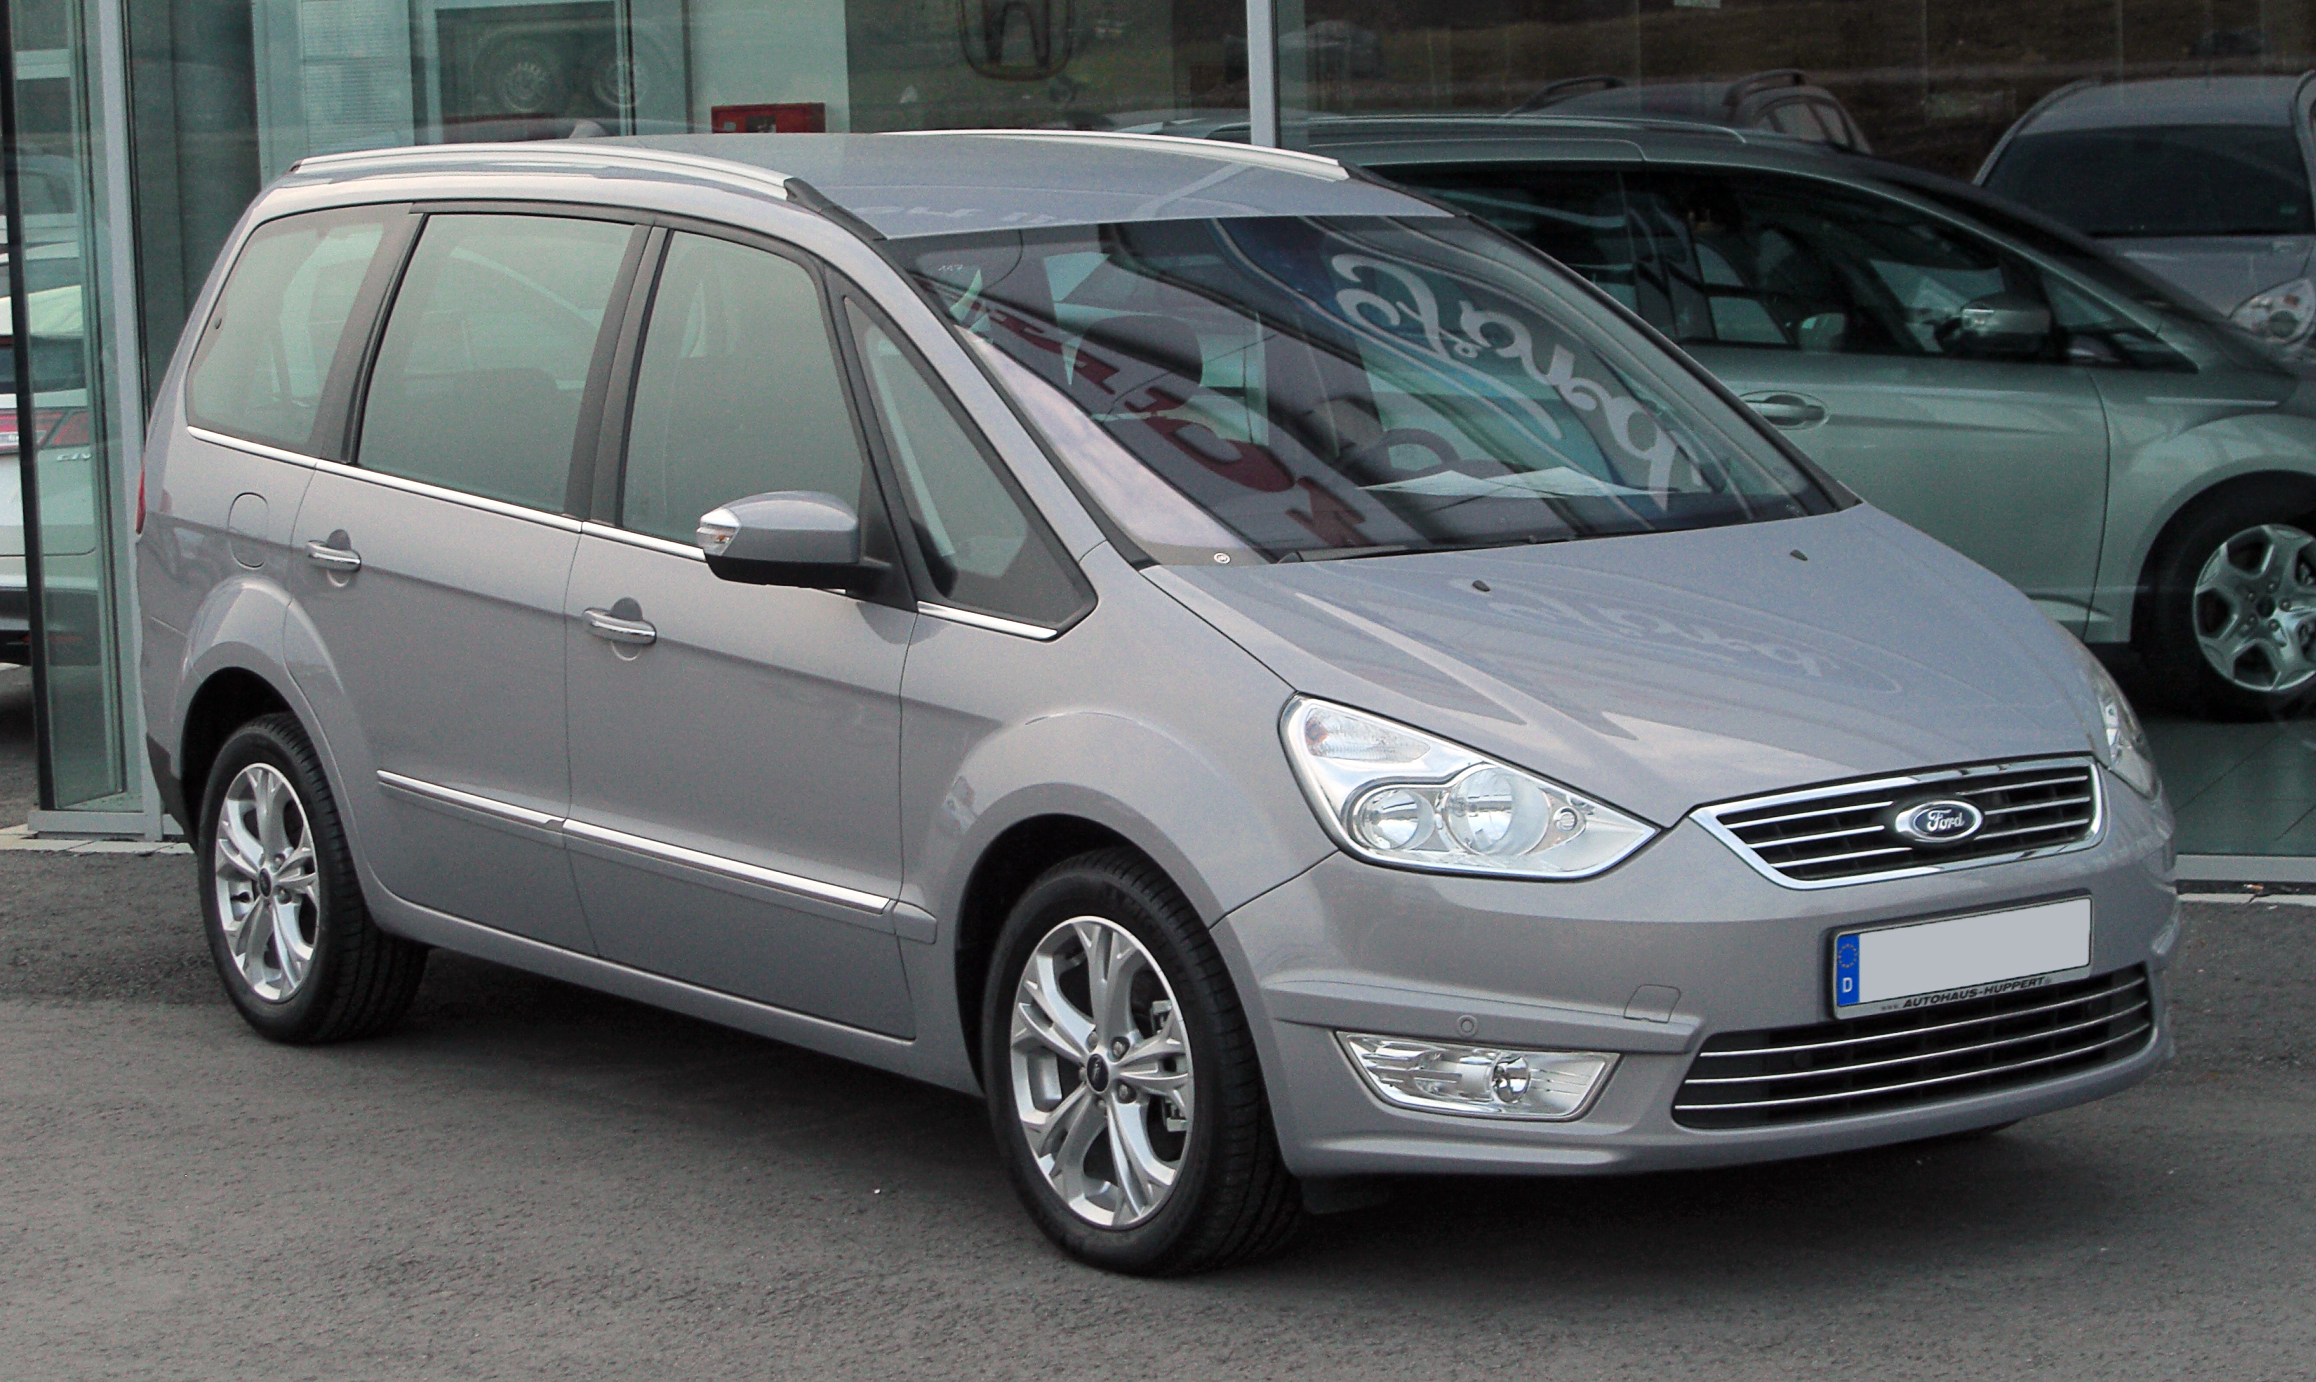 ford galaxy 2 0 tdci titanium ii facelift frontansicht 12 m rz 2011. Black Bedroom Furniture Sets. Home Design Ideas